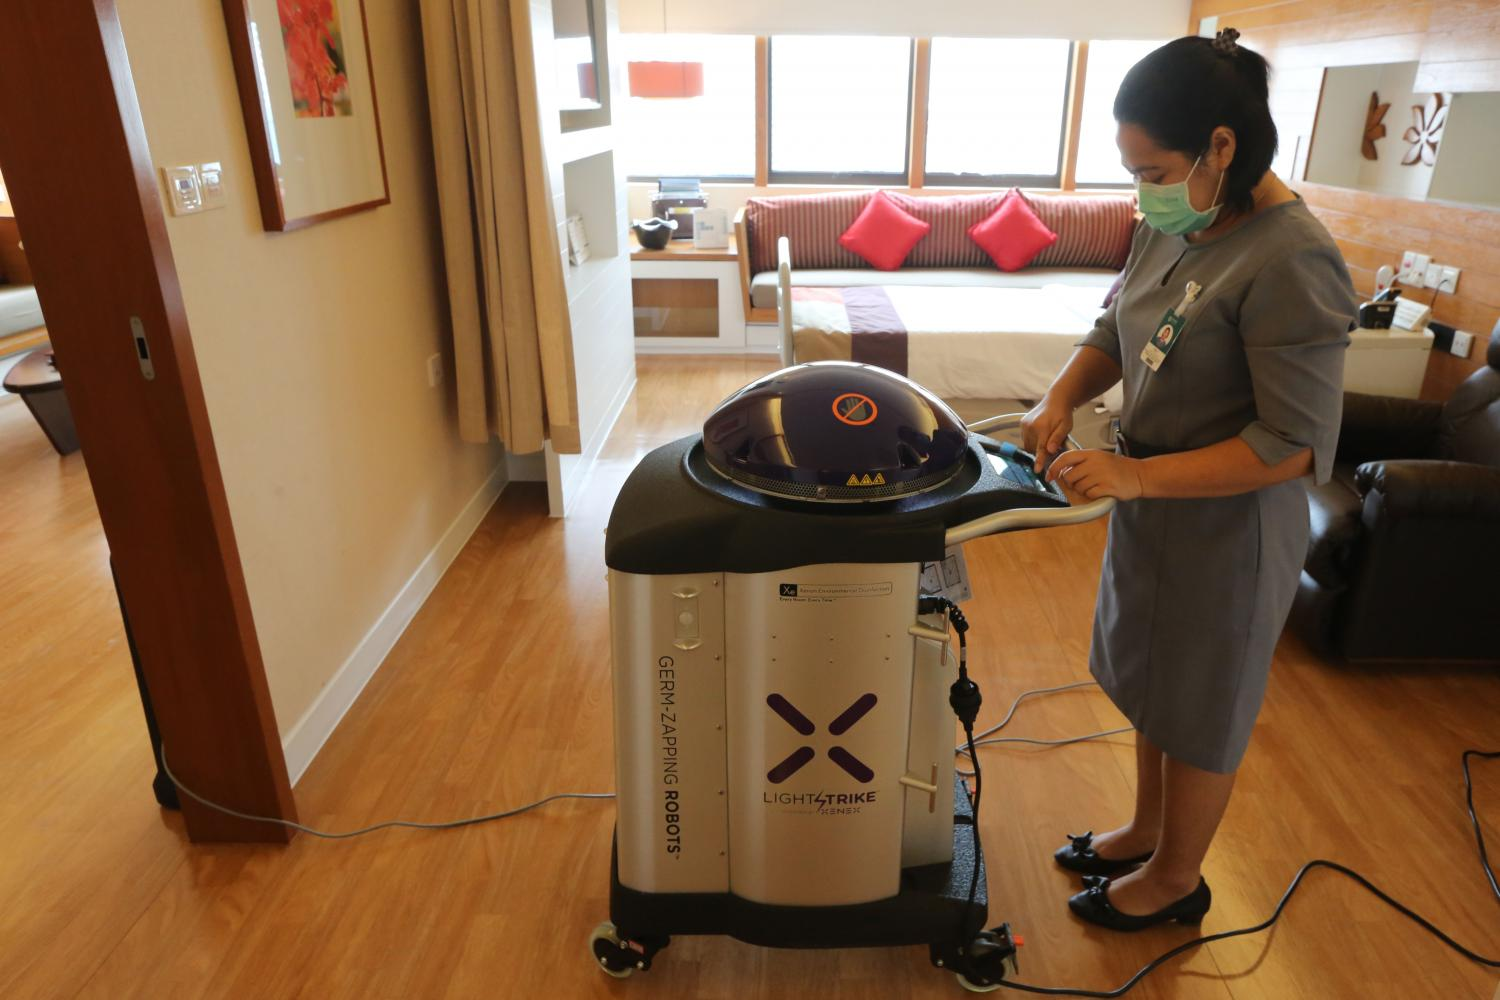 Robots that use UV light to disinfect were introduced to tackle virus and drug-resistant bacteria at Bumrungrad International Hospital during the Covid-19 outbreak. (Photo by Wichan Charoenkiatpakul)